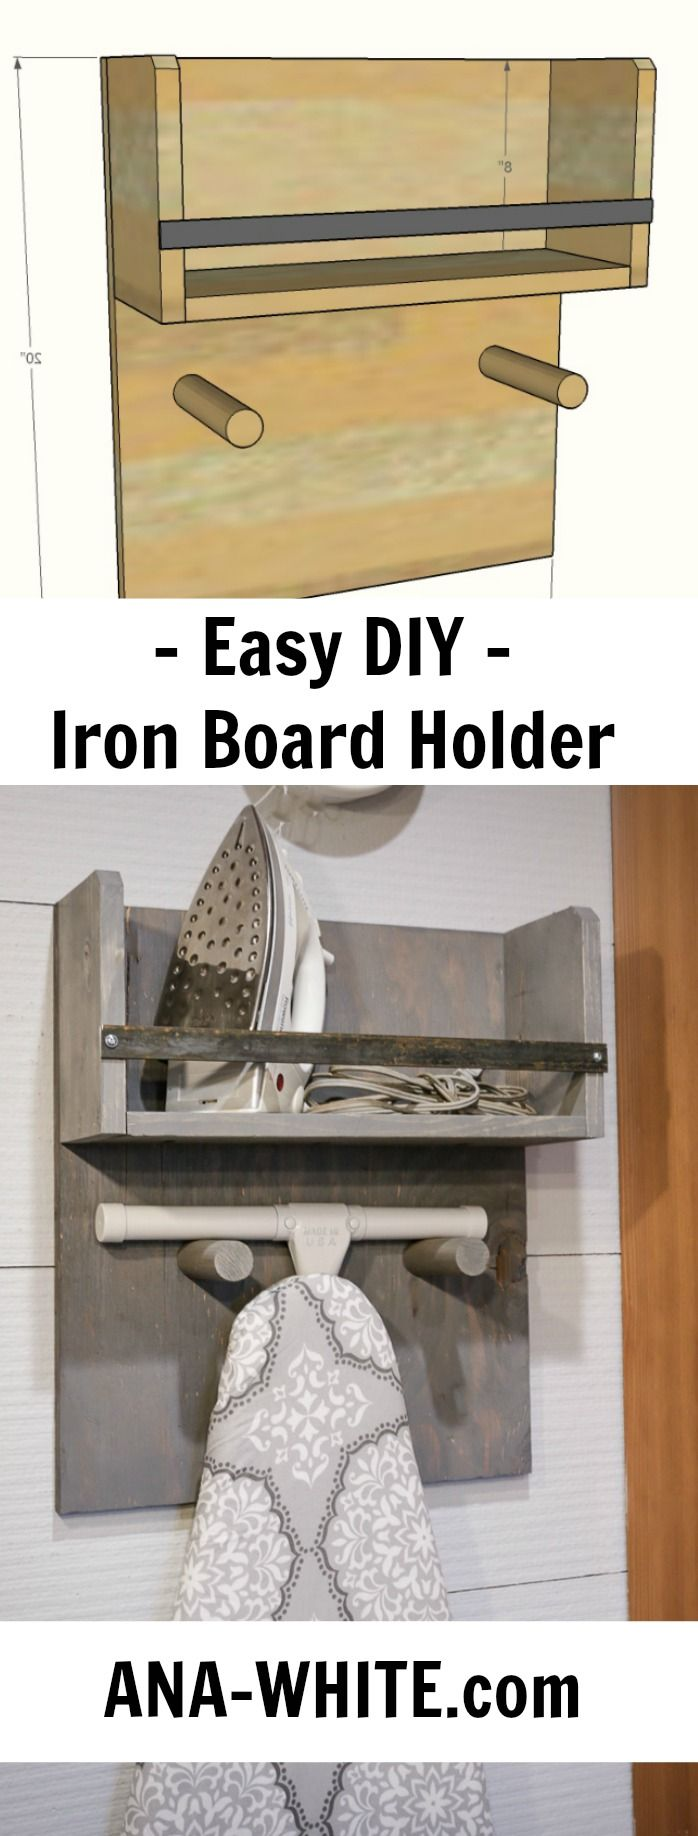 Ana White | Iron Board Holder - DIY Projects